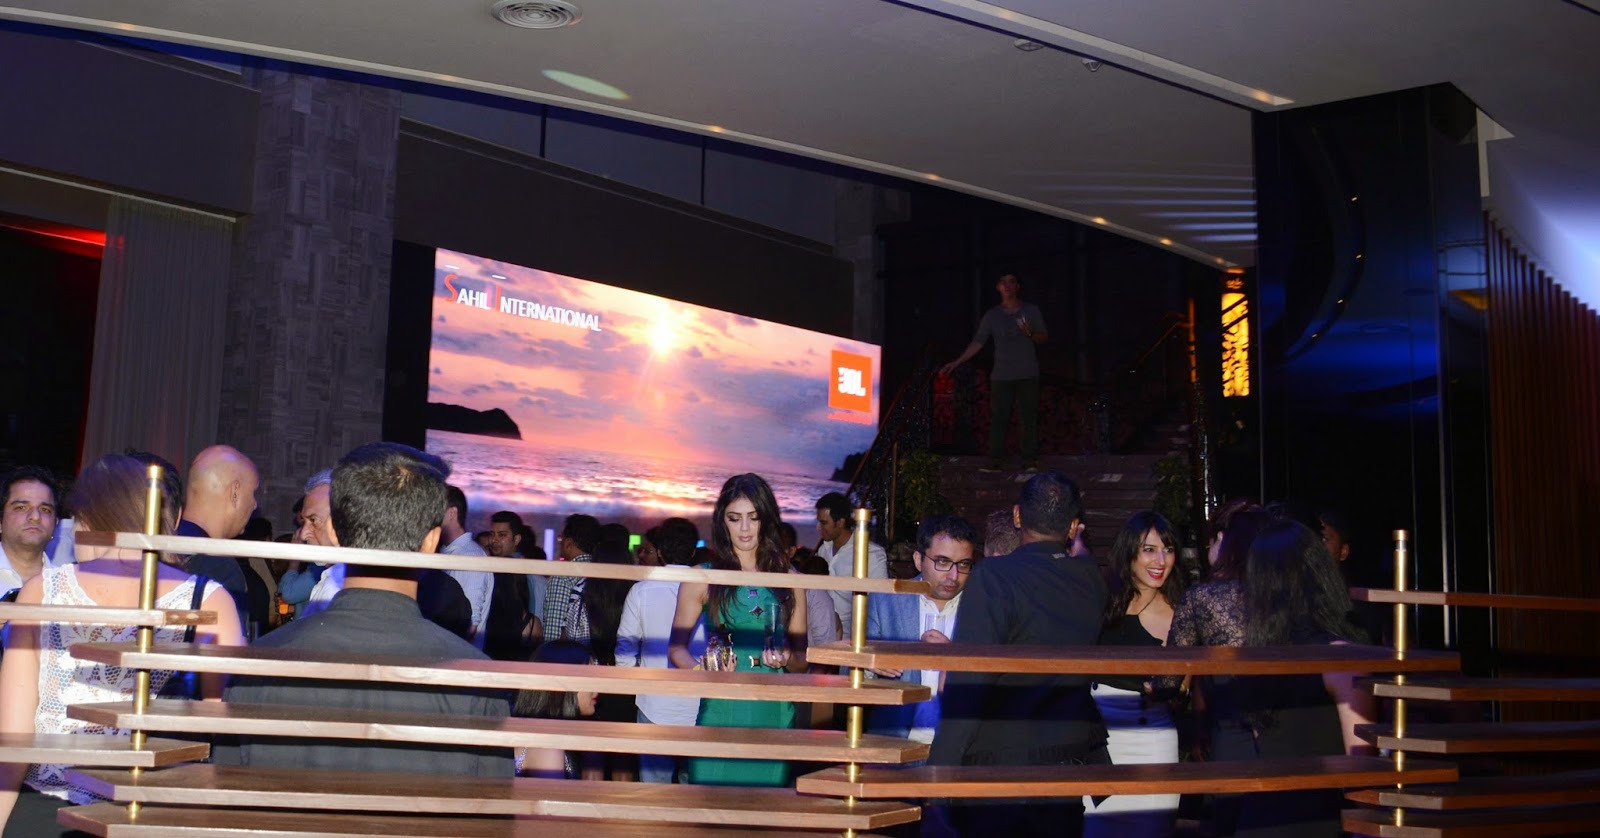 LED Screens at the JBL Just Be Loud Party